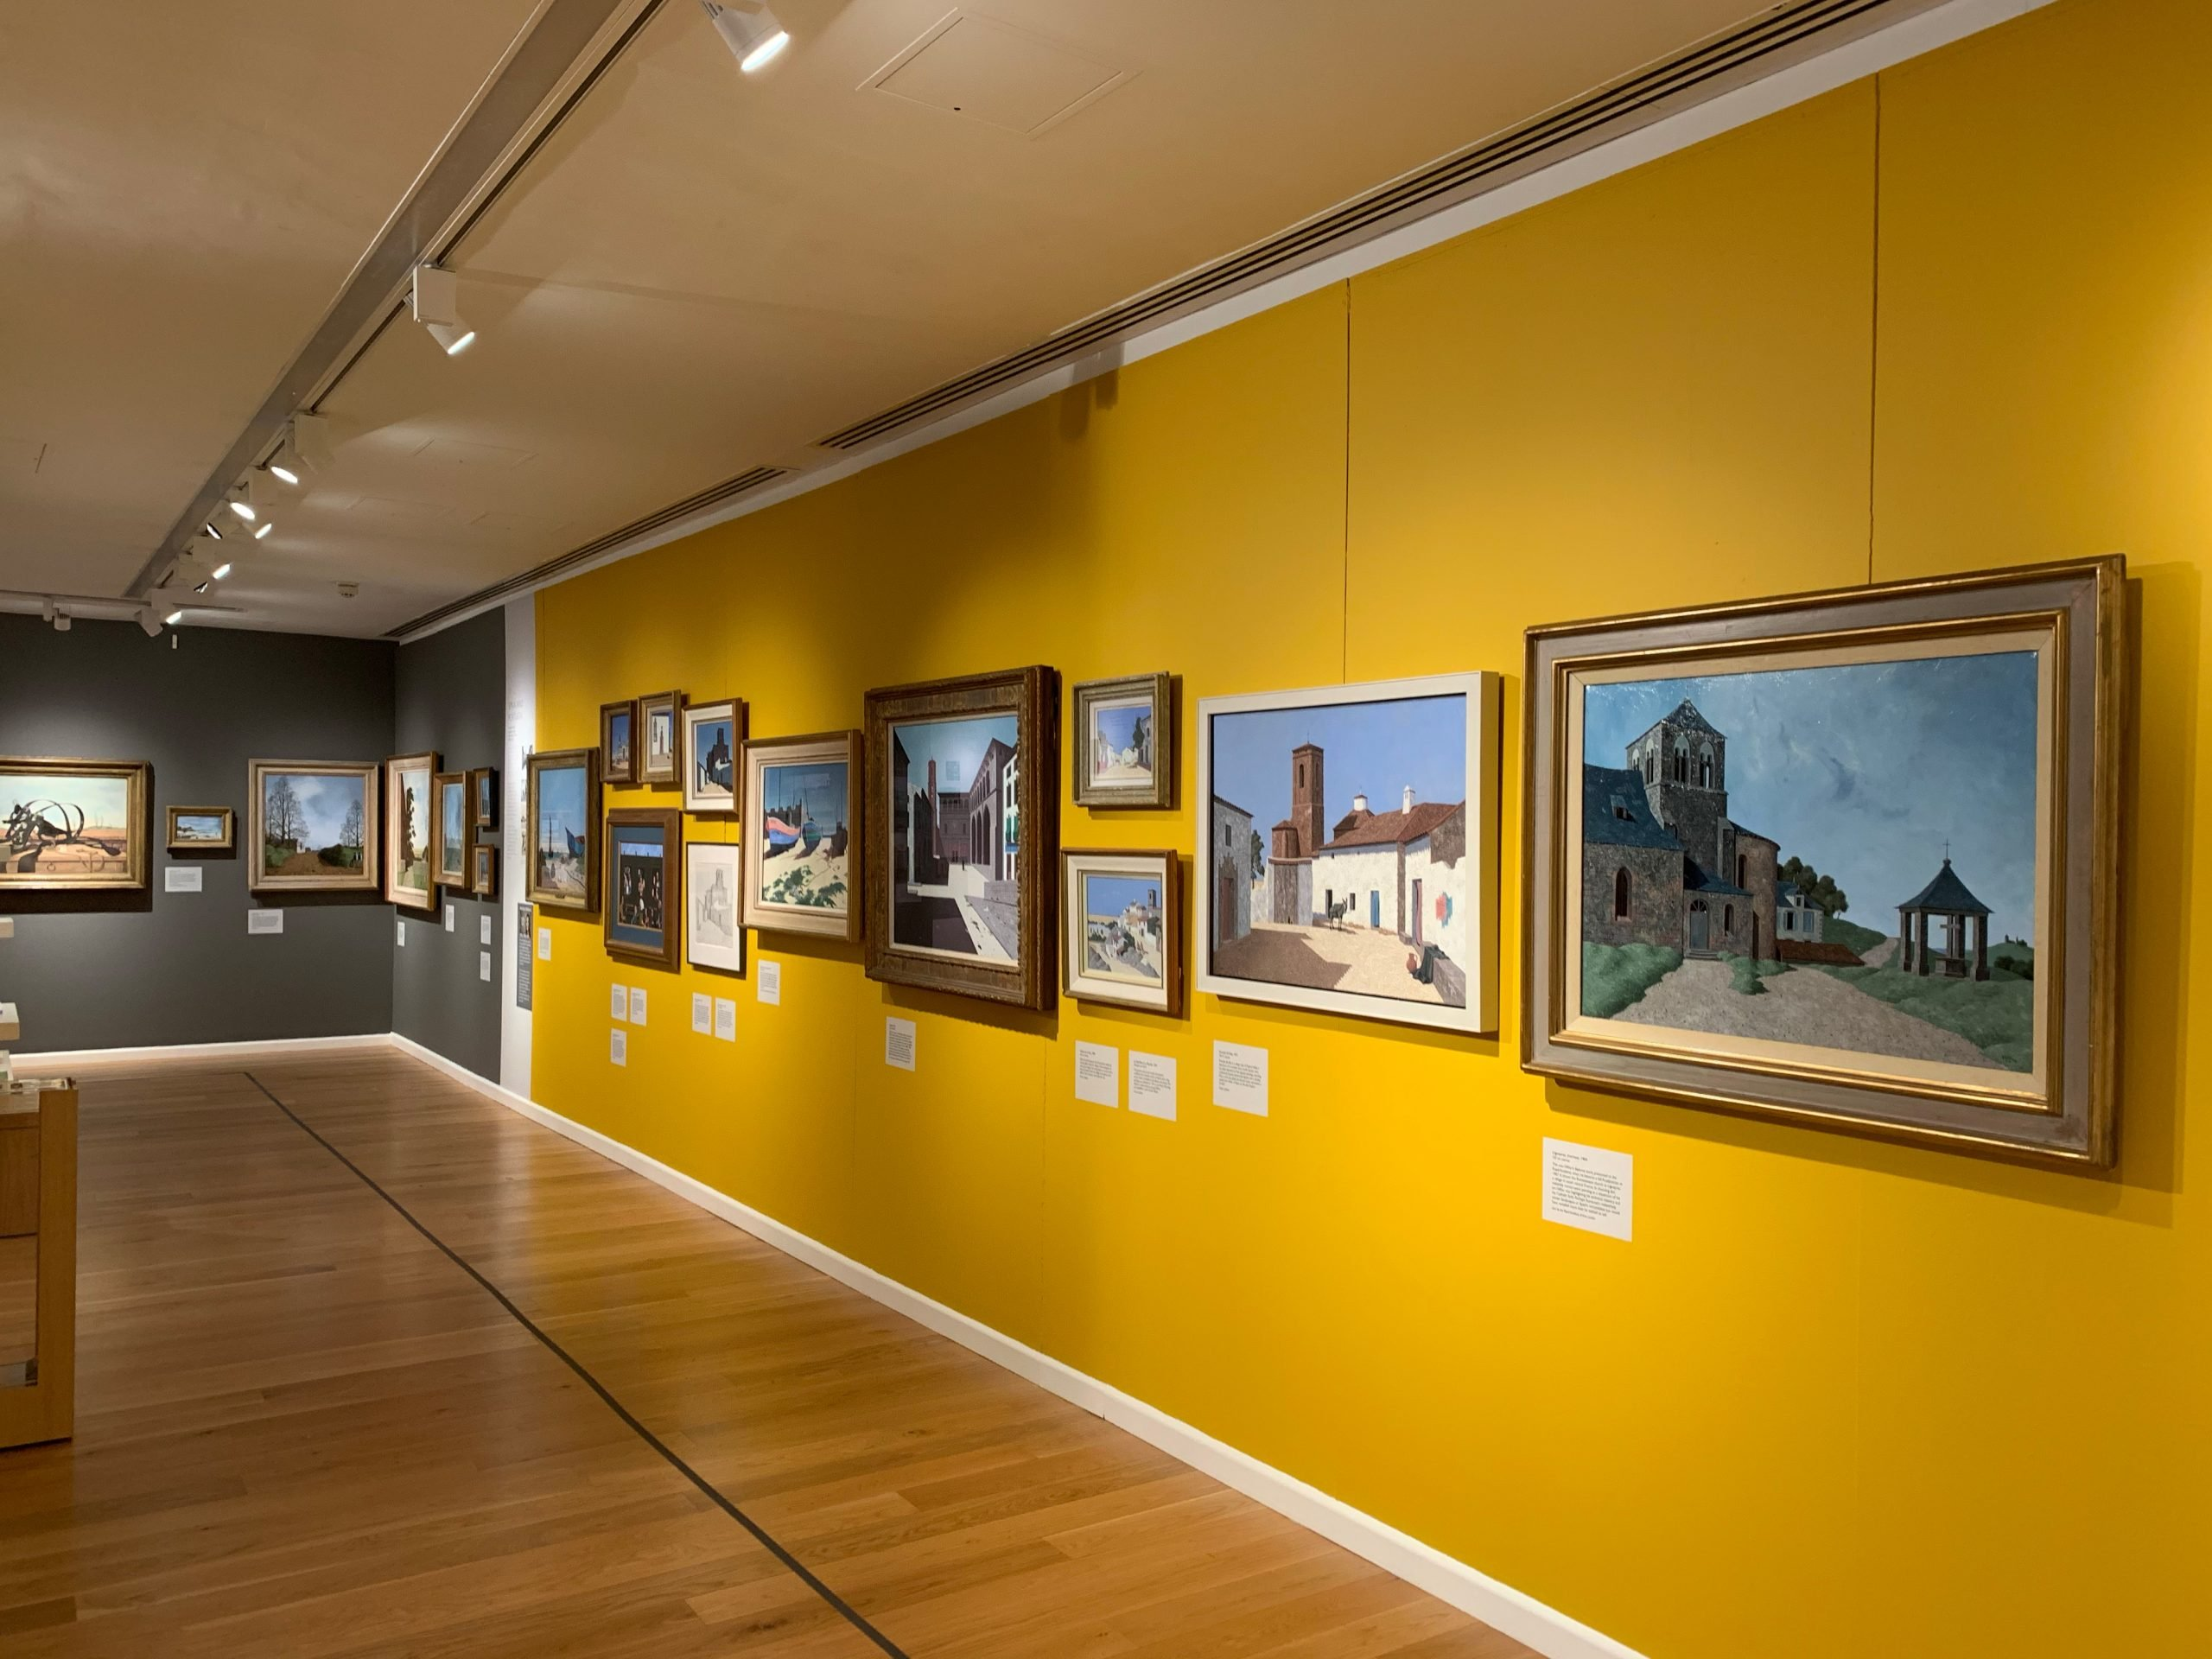 The Tristram Hillier exhibition at the Museum of Somerset